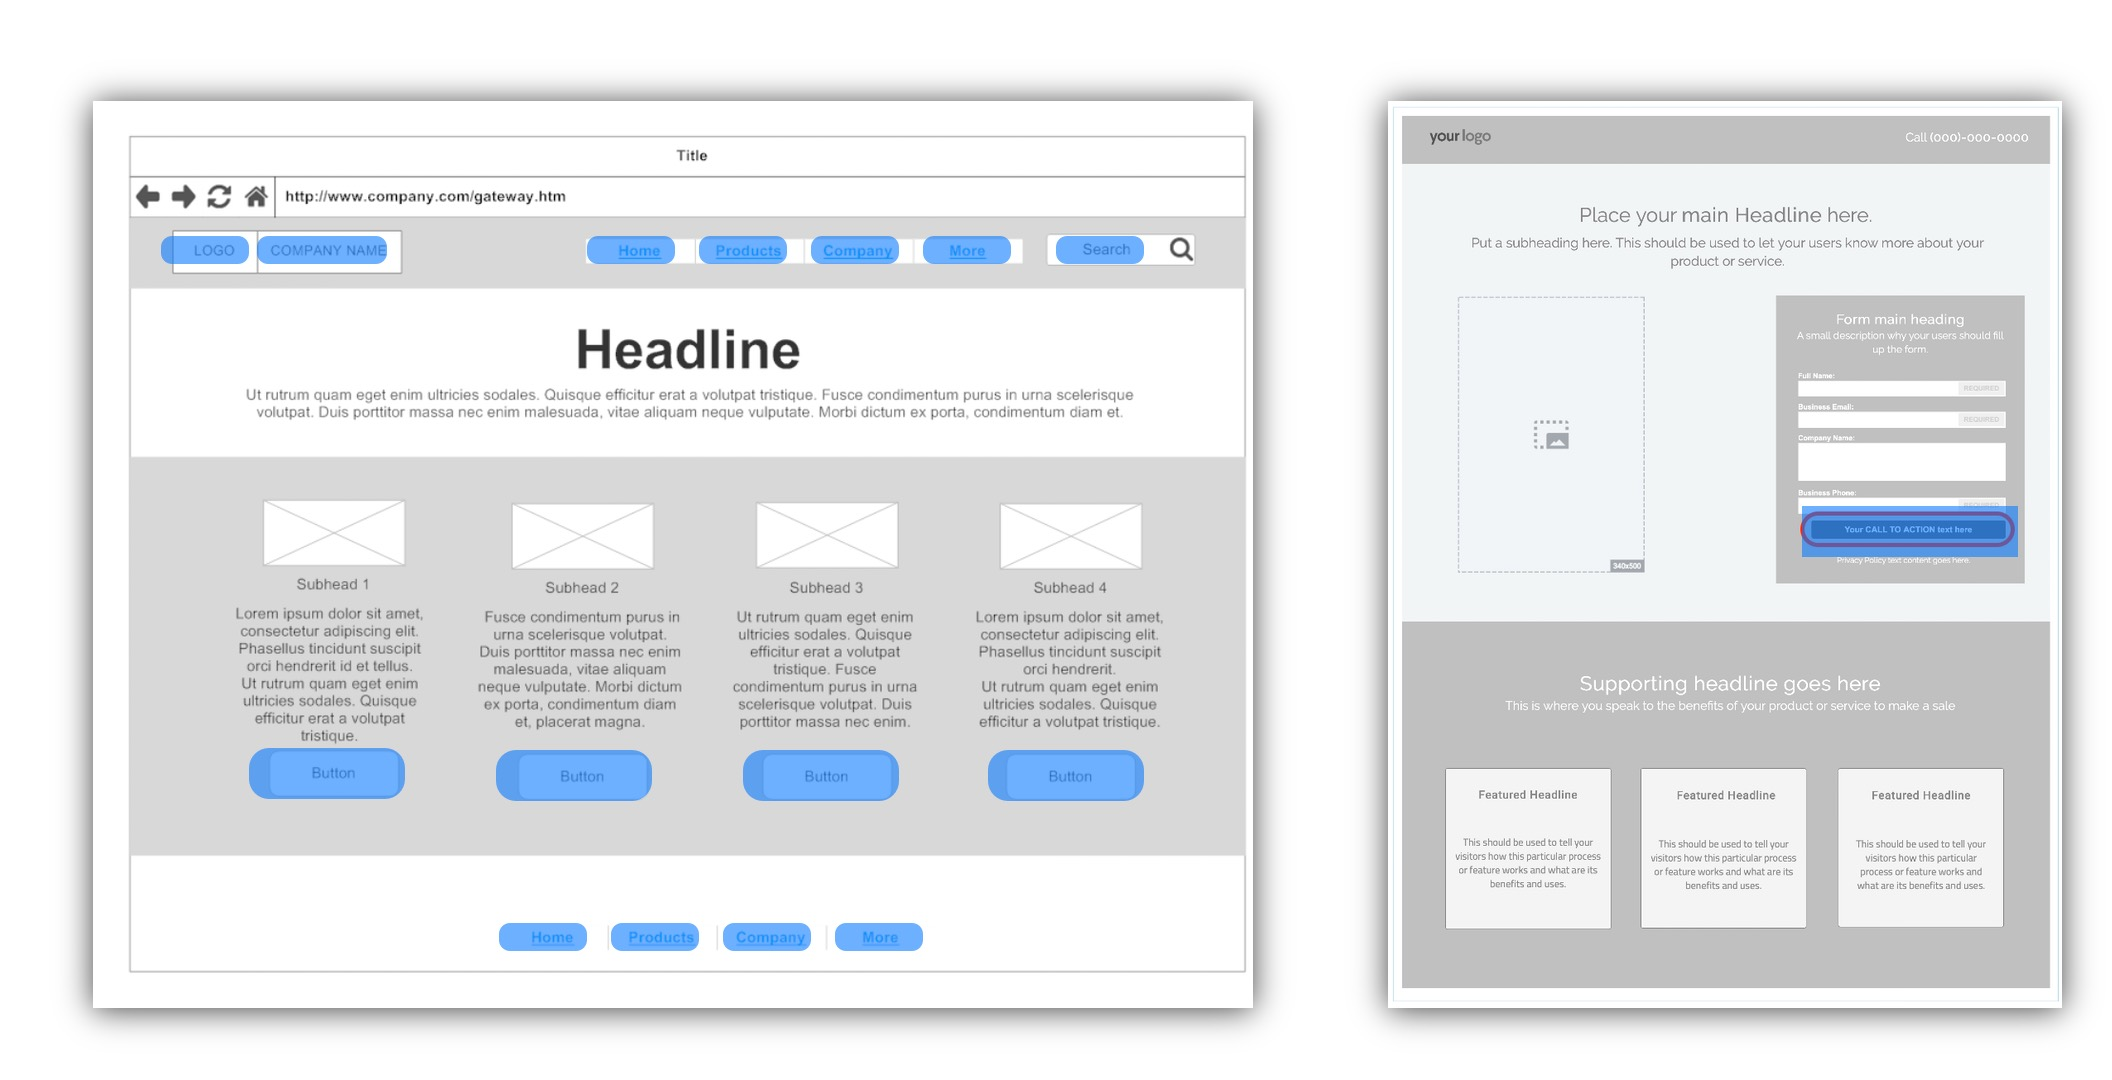 Comparison of Homepage and Landing Page image